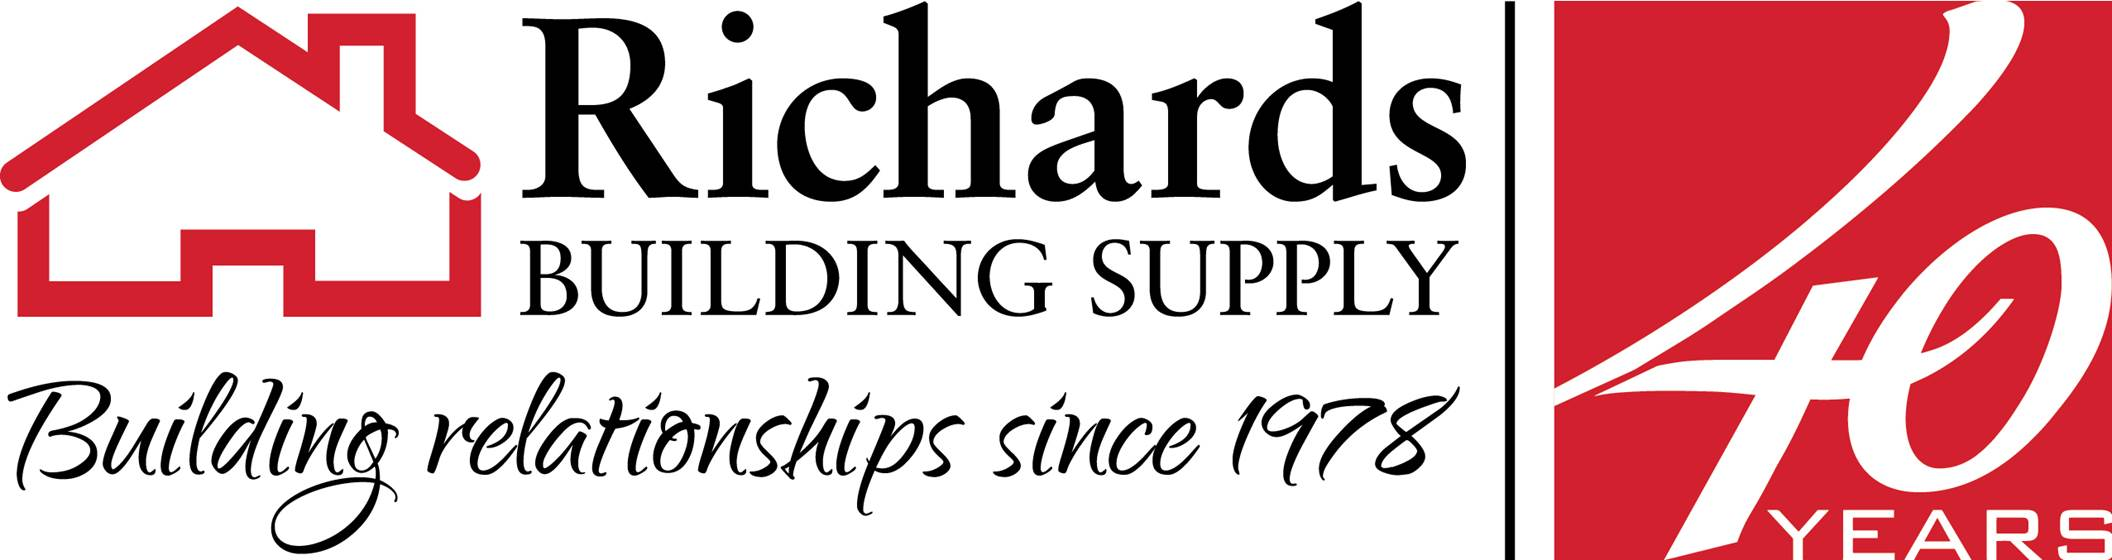 Richards Building Supply Logo